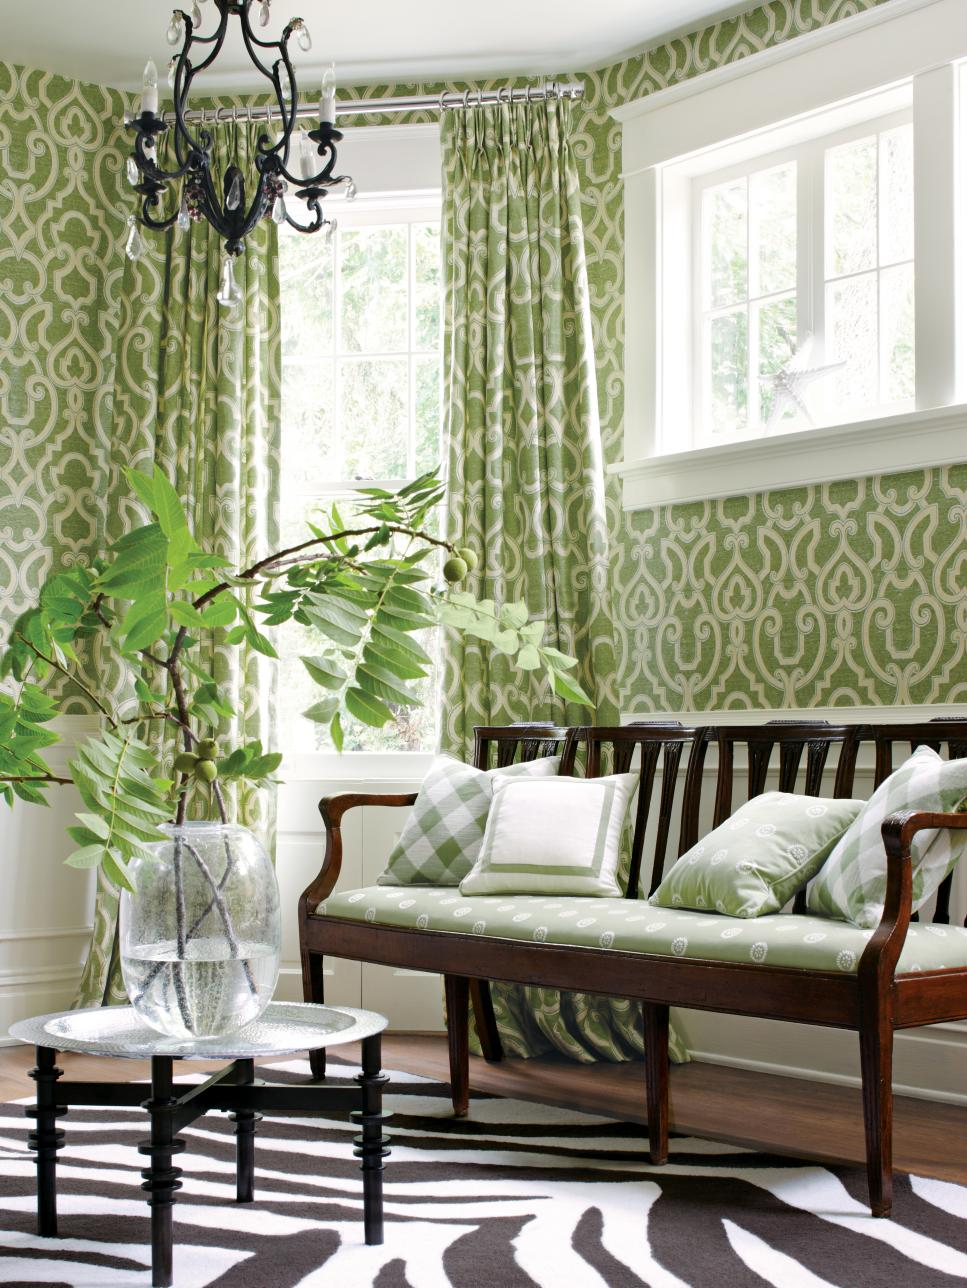 Small Living Rooms Decorating Hgtv: 10 Ways To Decorate With Green Moss